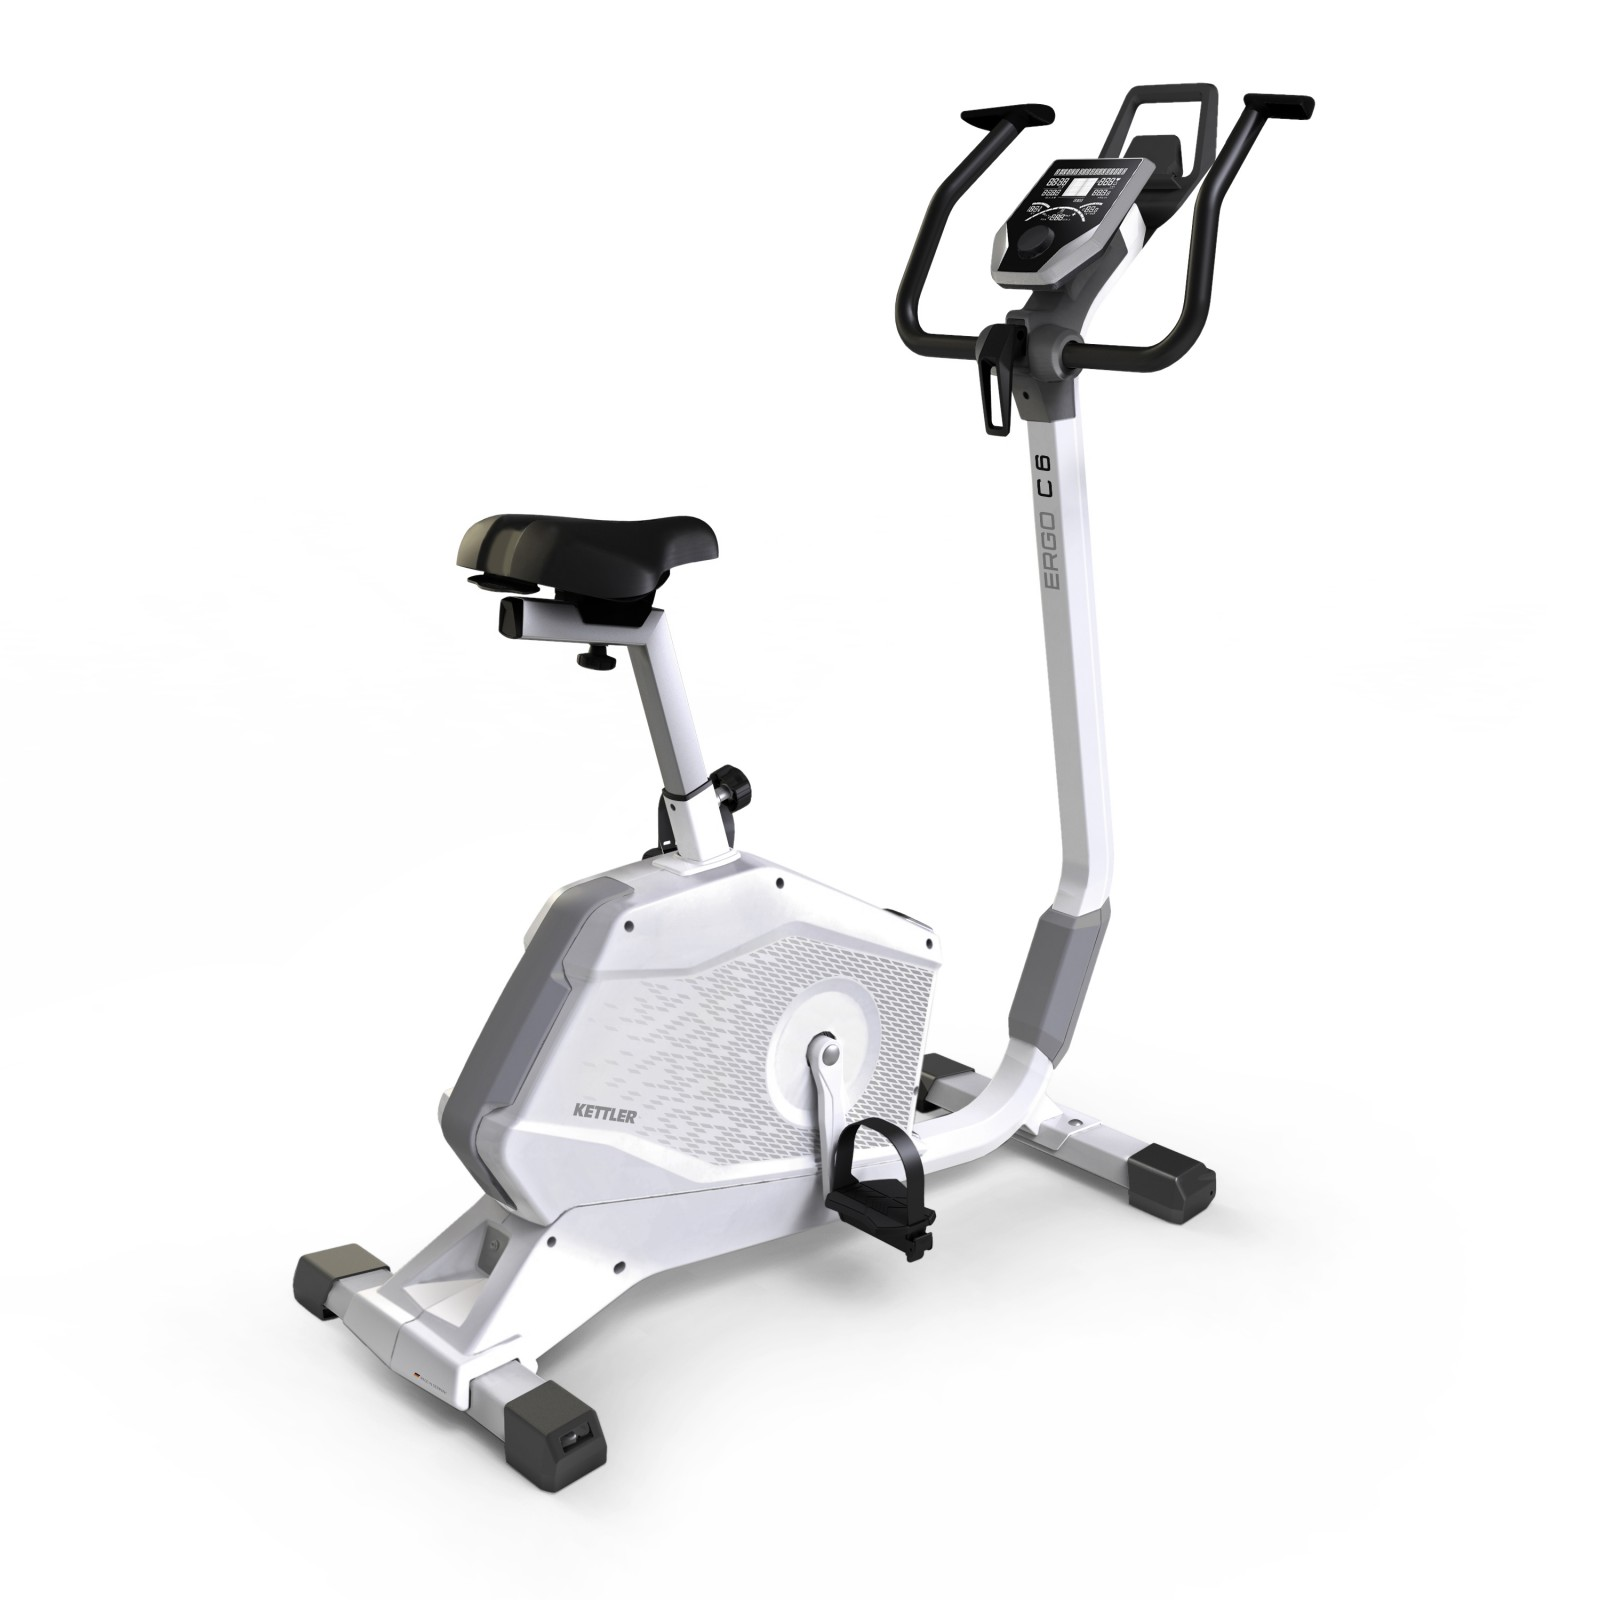 Kettler Fitness Kettler Exercise Bike Ergo C6